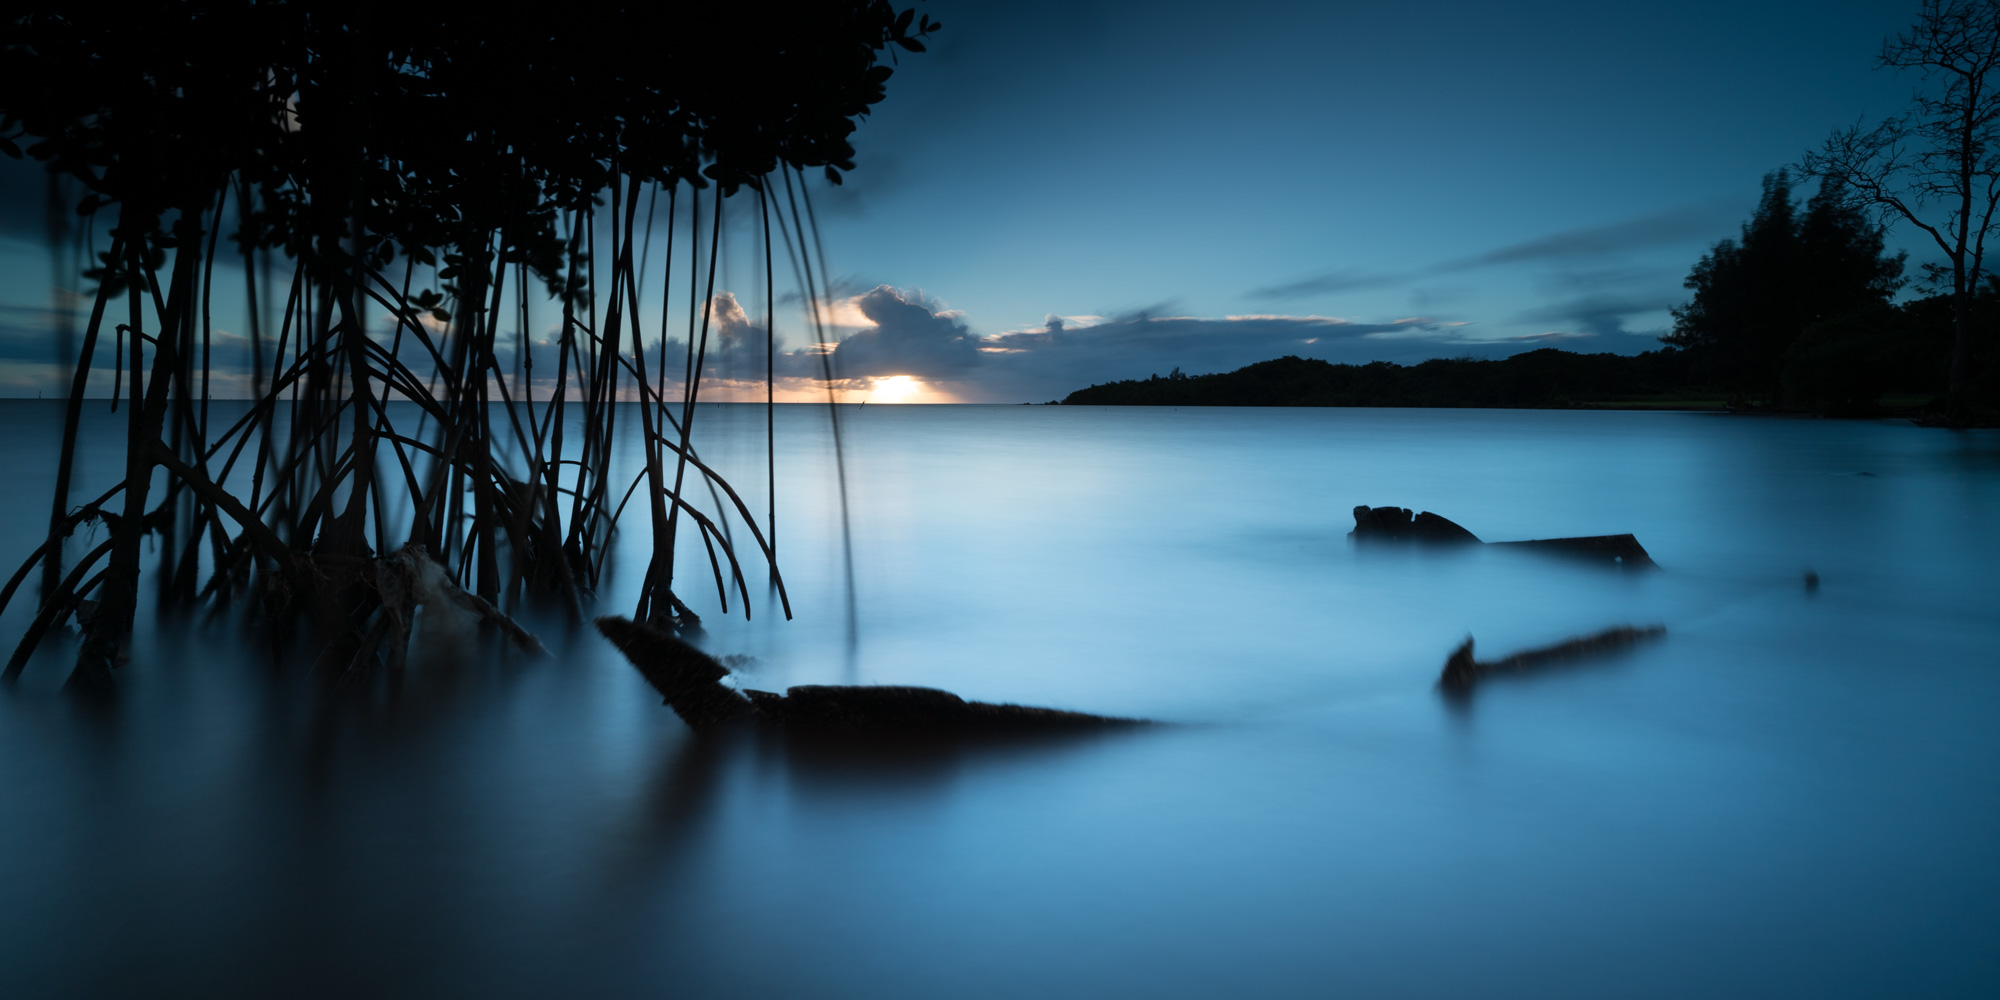 Waiahole Beach Sunrise Lee Filter Big Stopper,3 stop medium grad & a 3stop soft grad Sony A7S II |  121 sec. |  f/8 |  ISO 50  |  Zeiss Batis 18mm  Edited in Lightroom CC 2015  Copyright 2016 Ryan Sakamoto, All rights reserved